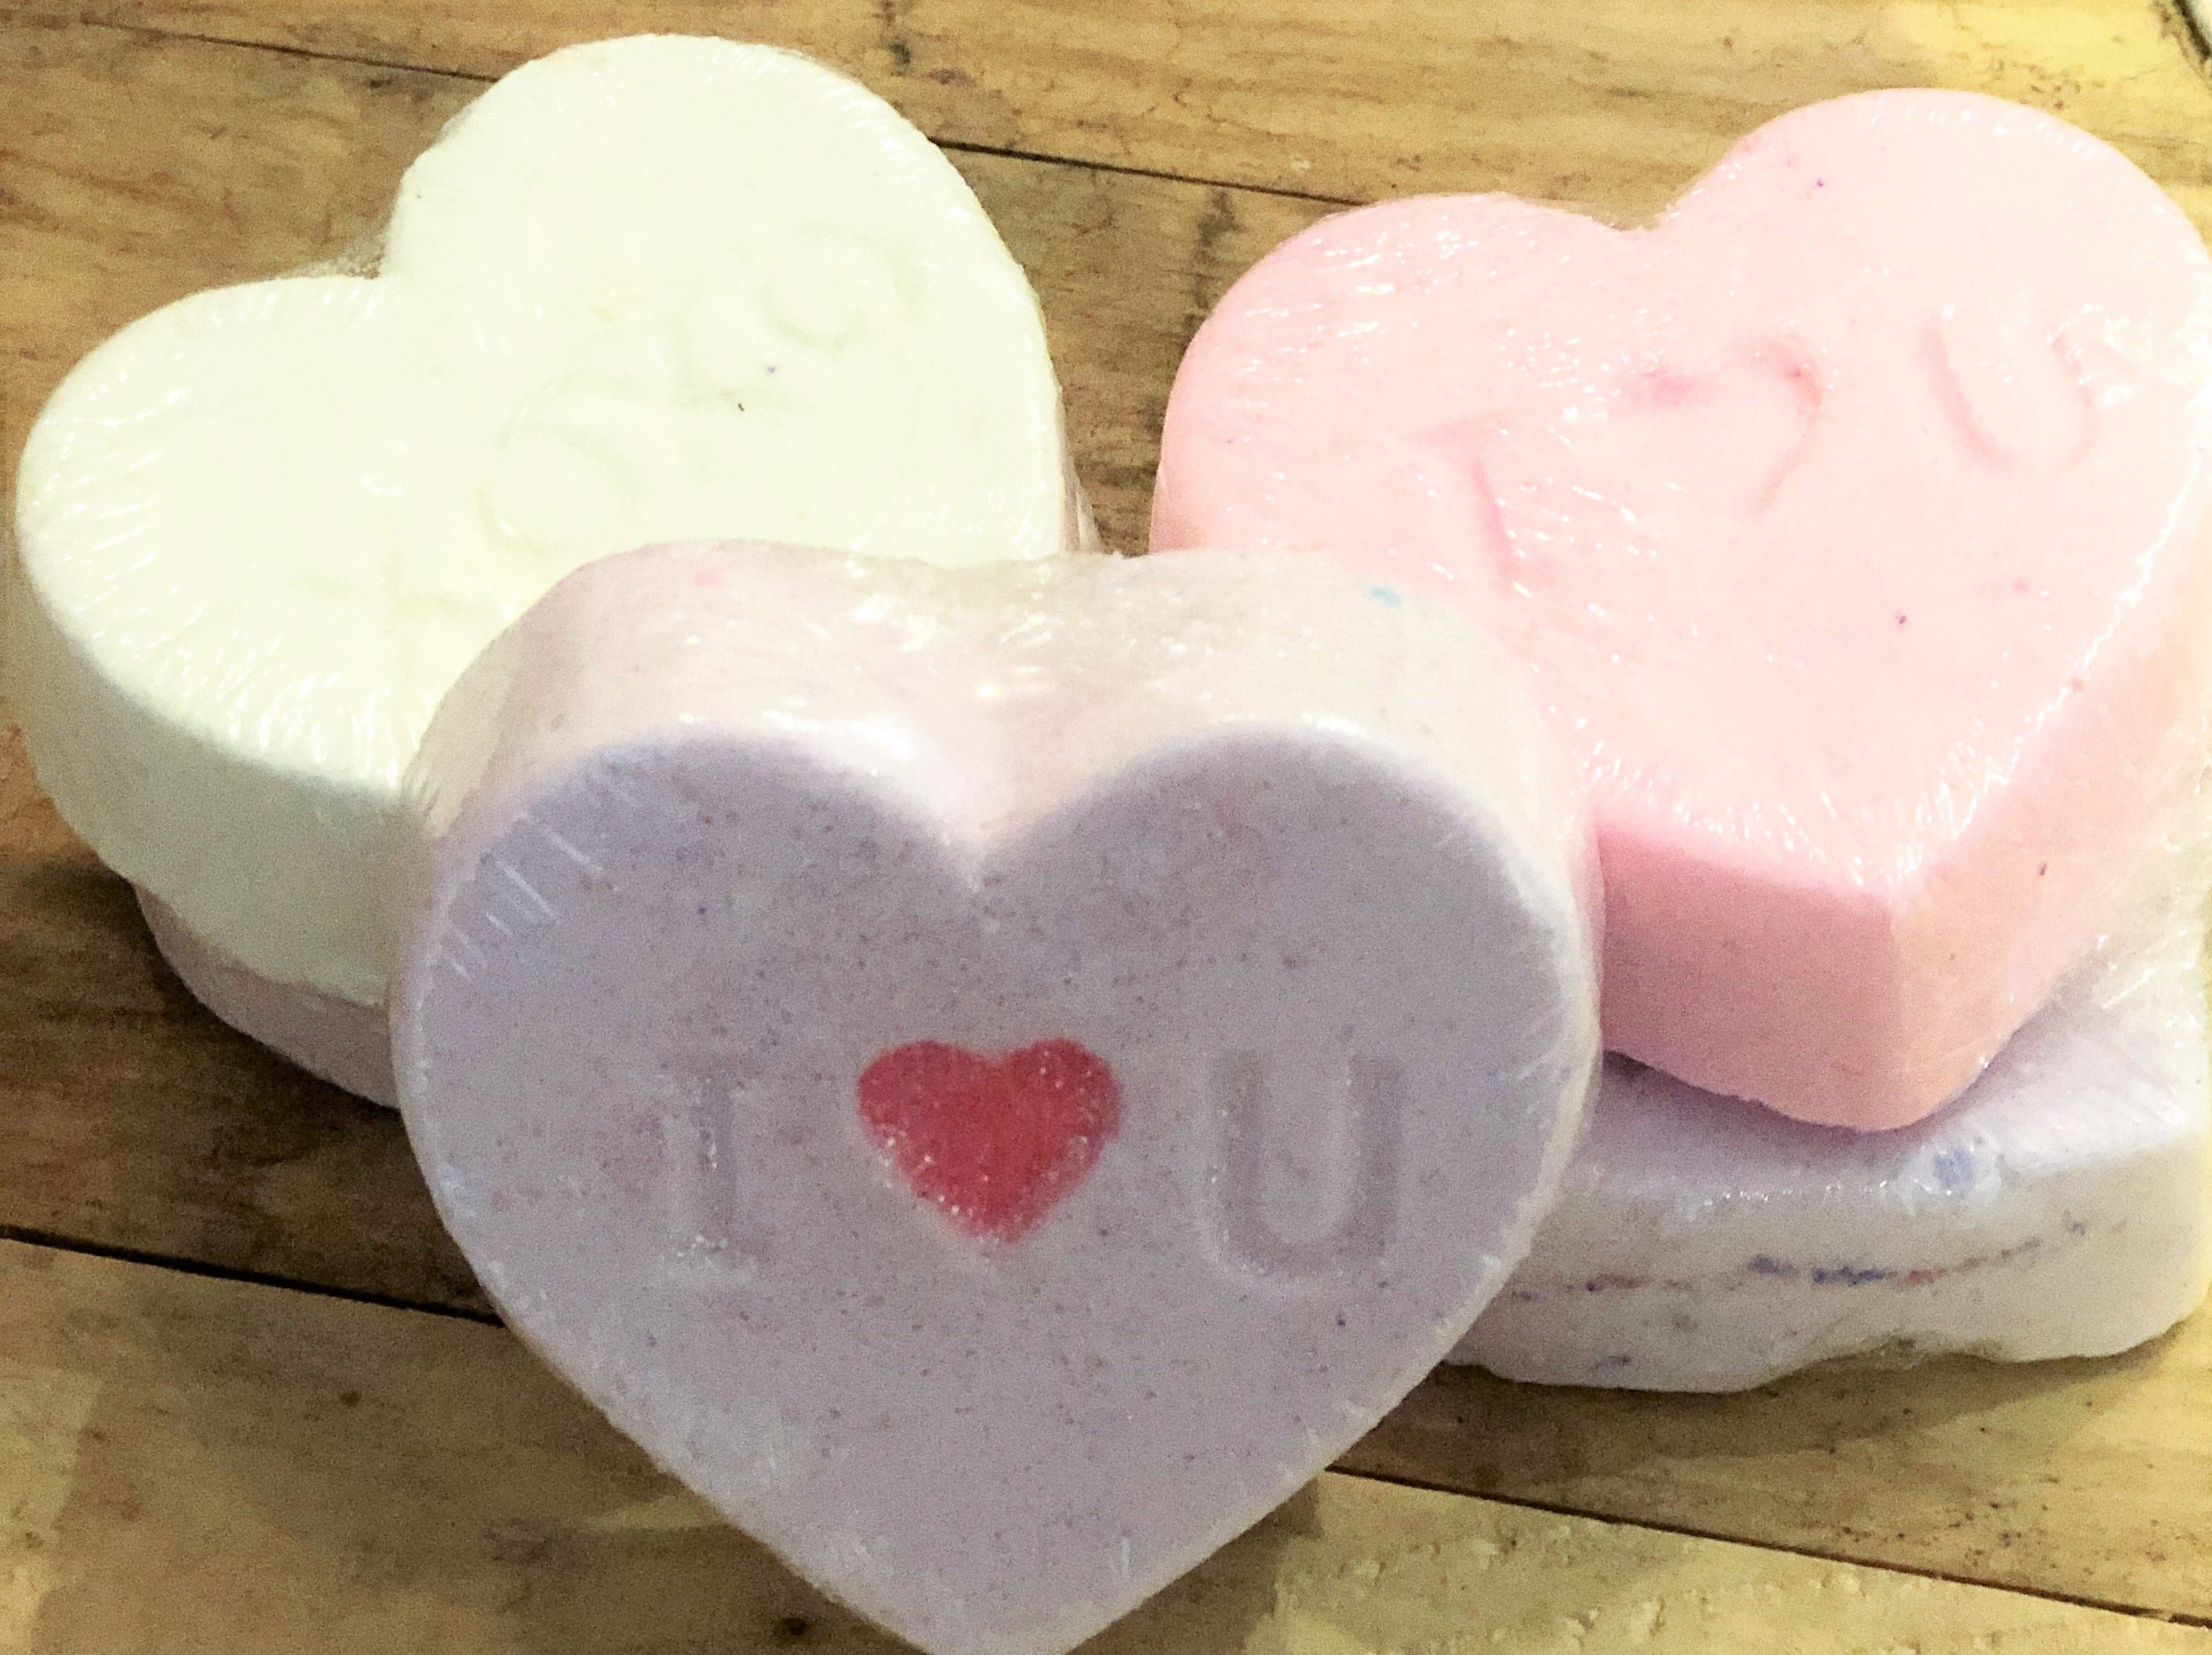 After The Bath Lab conversation heart bath bombs sold out online, creator Josh Ray has restocked in time for Valentine's Day shoppers at Jacks of Knoxville.